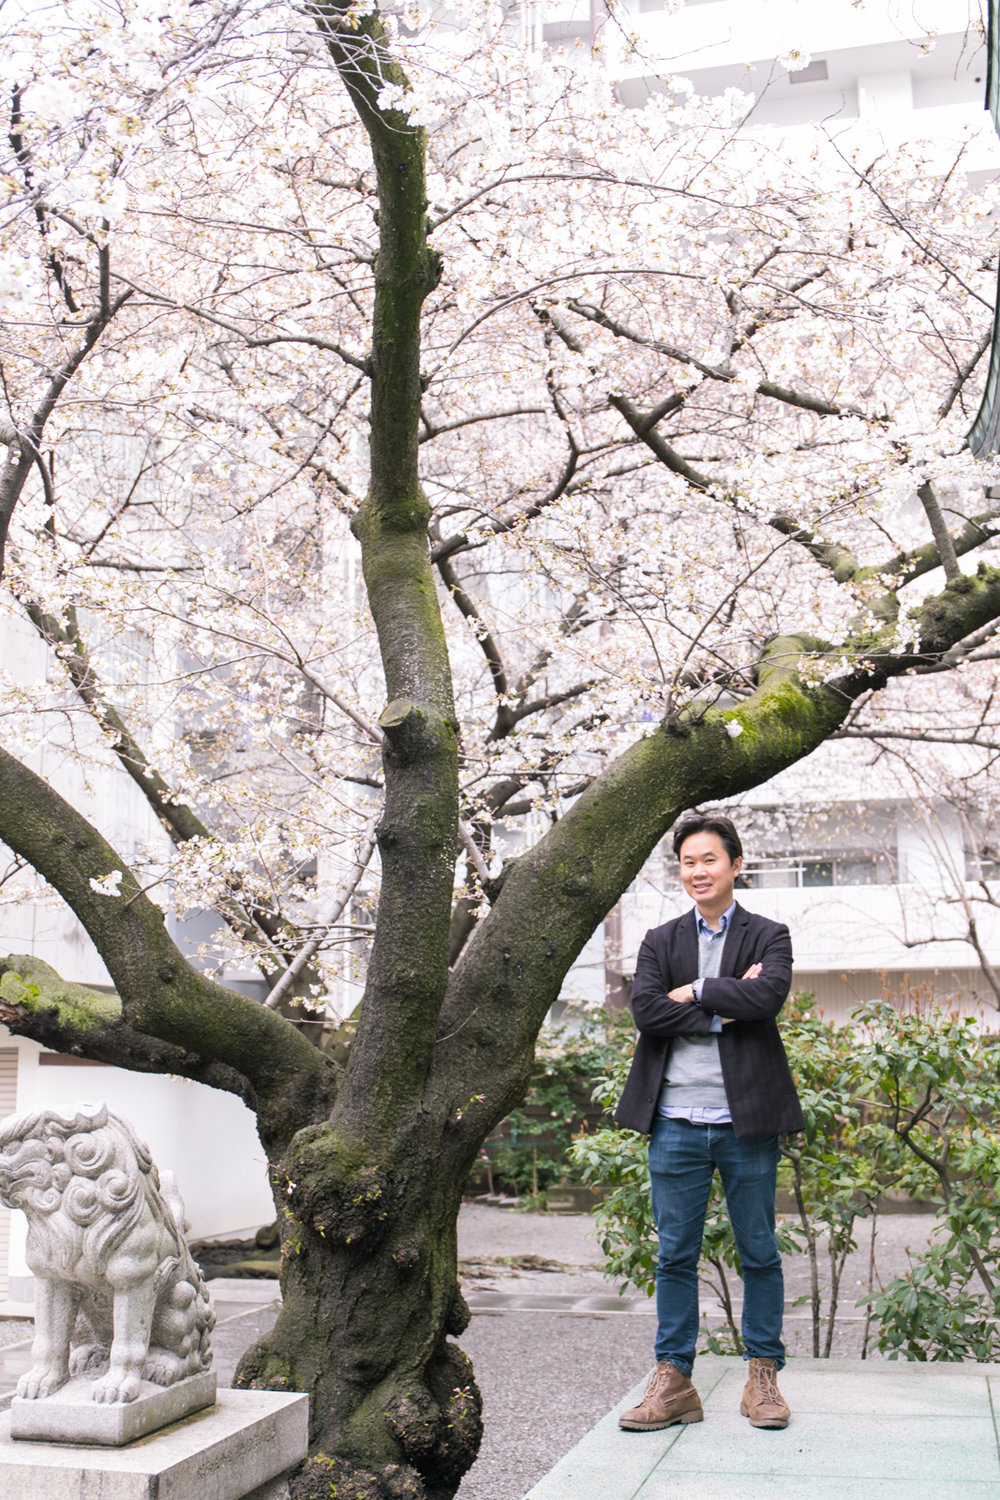 Photography tour in Osaka with cherry blossoms